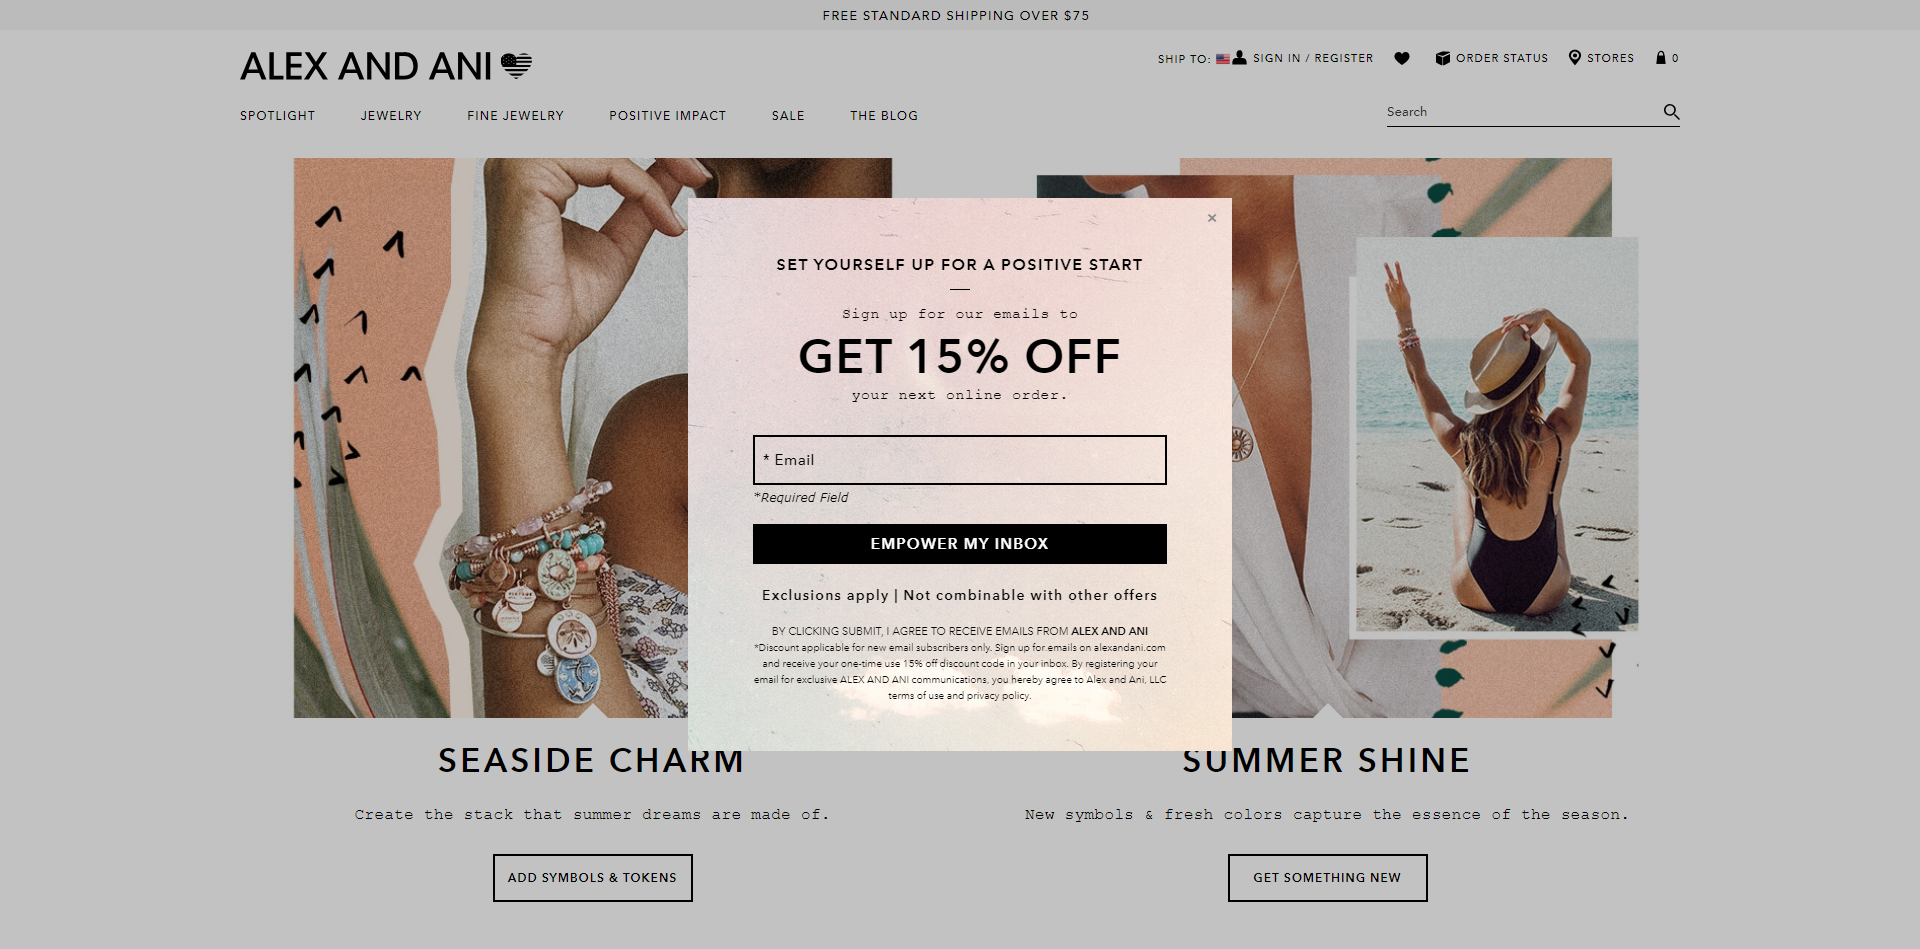 An exit offer on alexandani.com